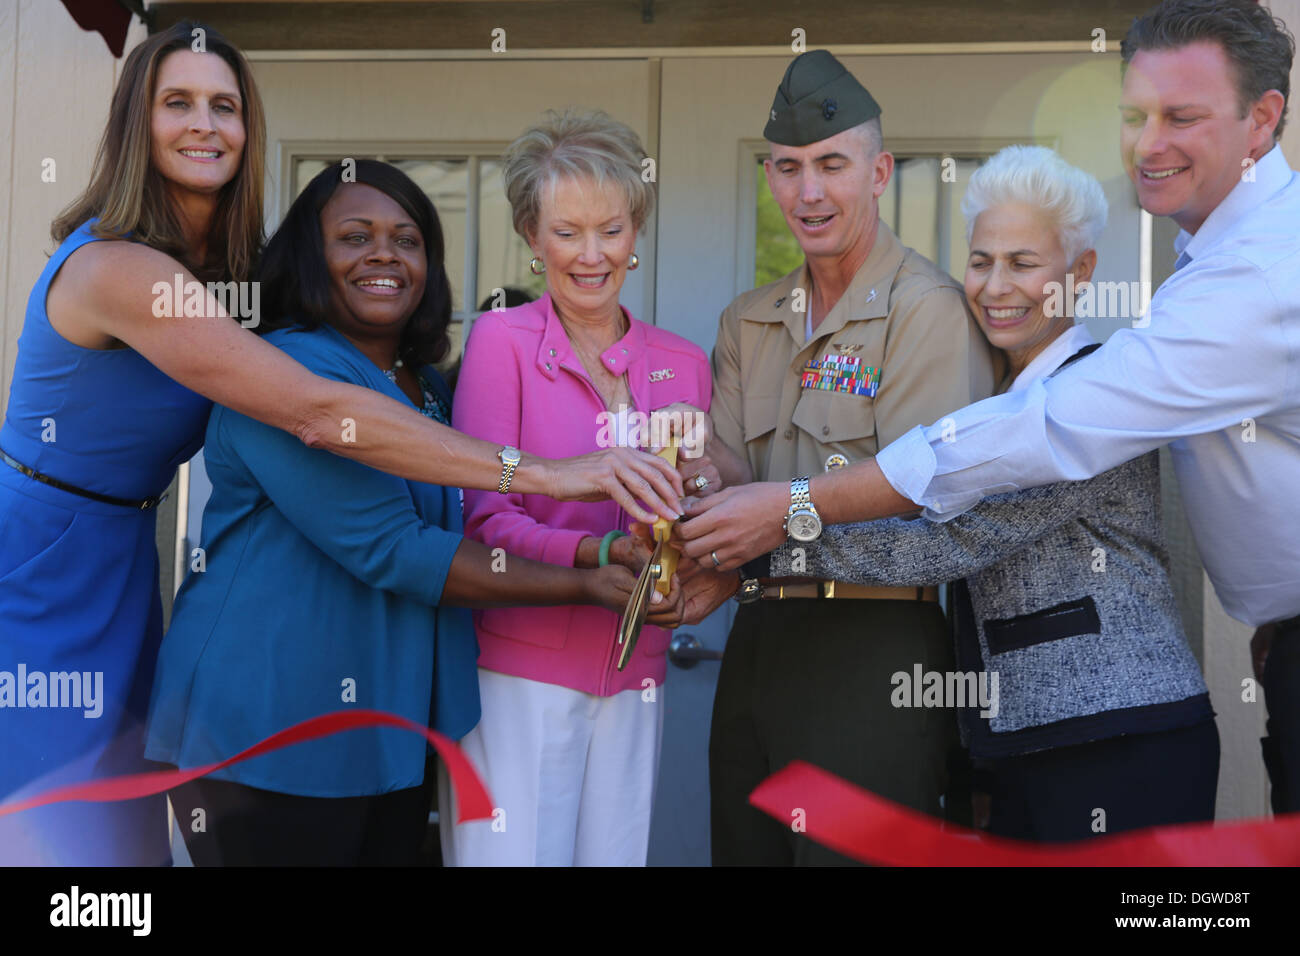 The Marine and Family Program Behavioral Health branch reveals the new Community Counseling Center aboard Marine Corps Air Station Miramar, Calif. Oct. 18. From left to right, Deanna Angel, Behavioral Health Branch director, Mary Bradford, Community Couns - Stock Image